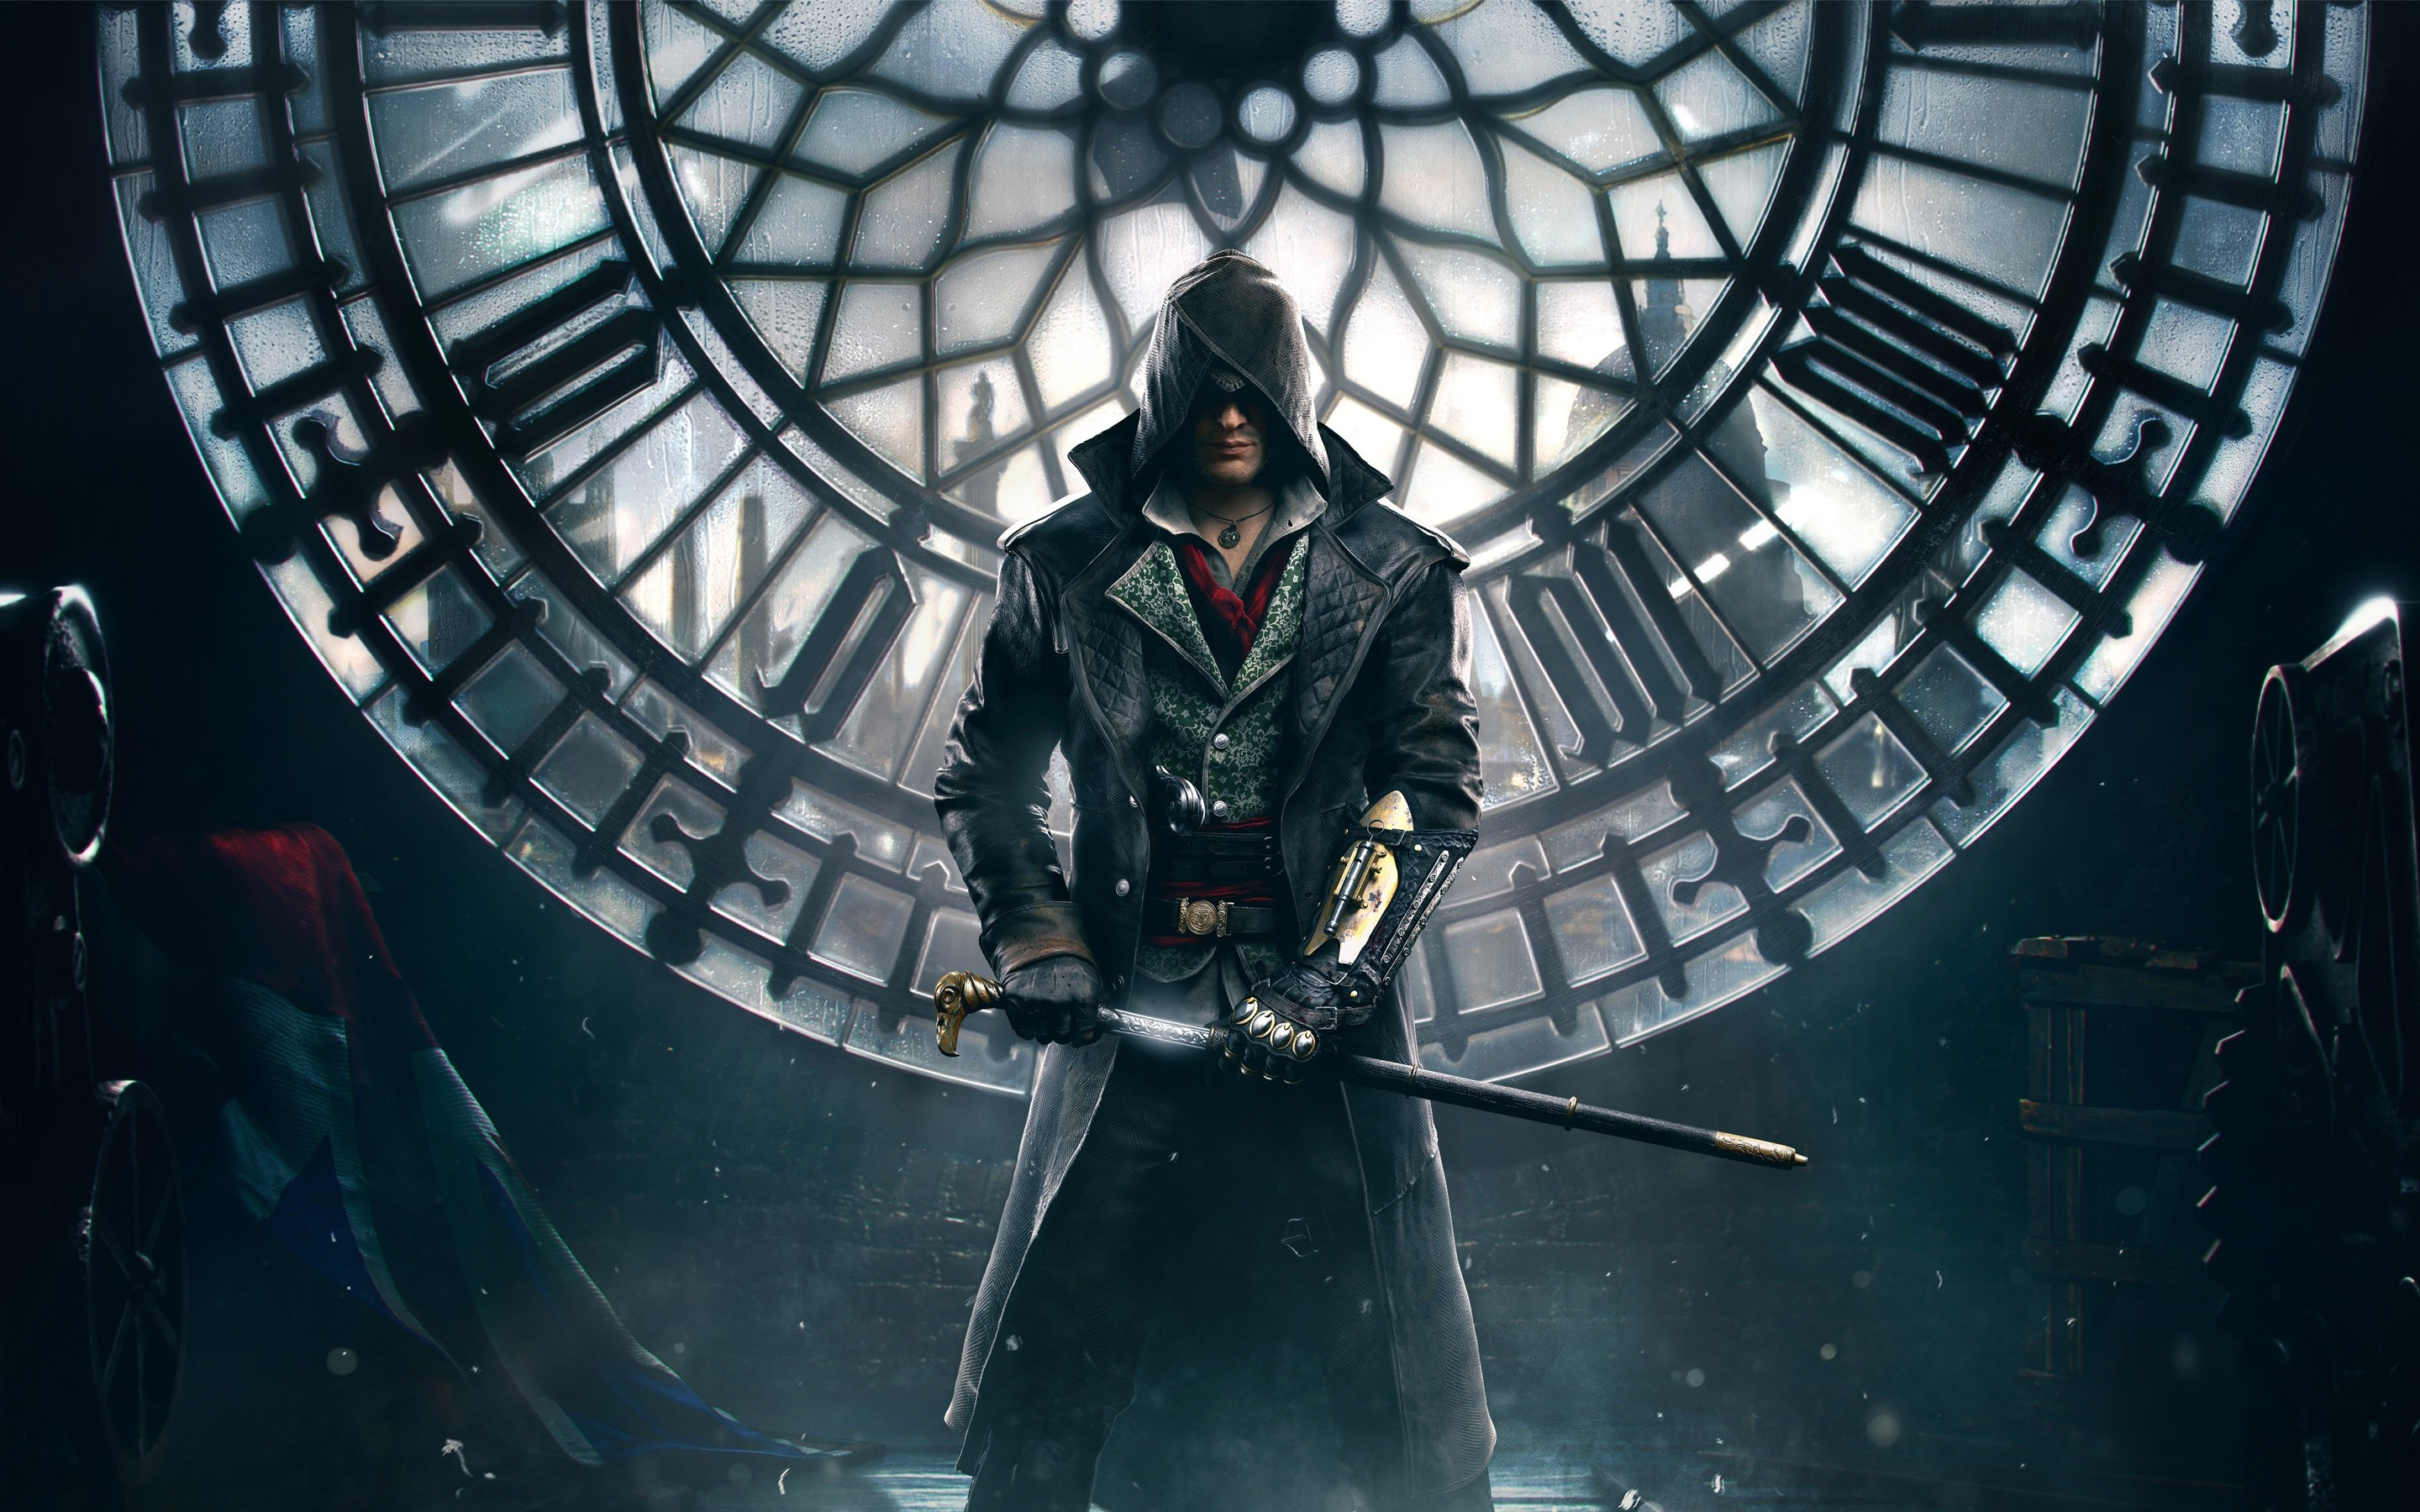 Assassins Creed Fondos De Pantalla Hd 4k Para Pc Y Celular